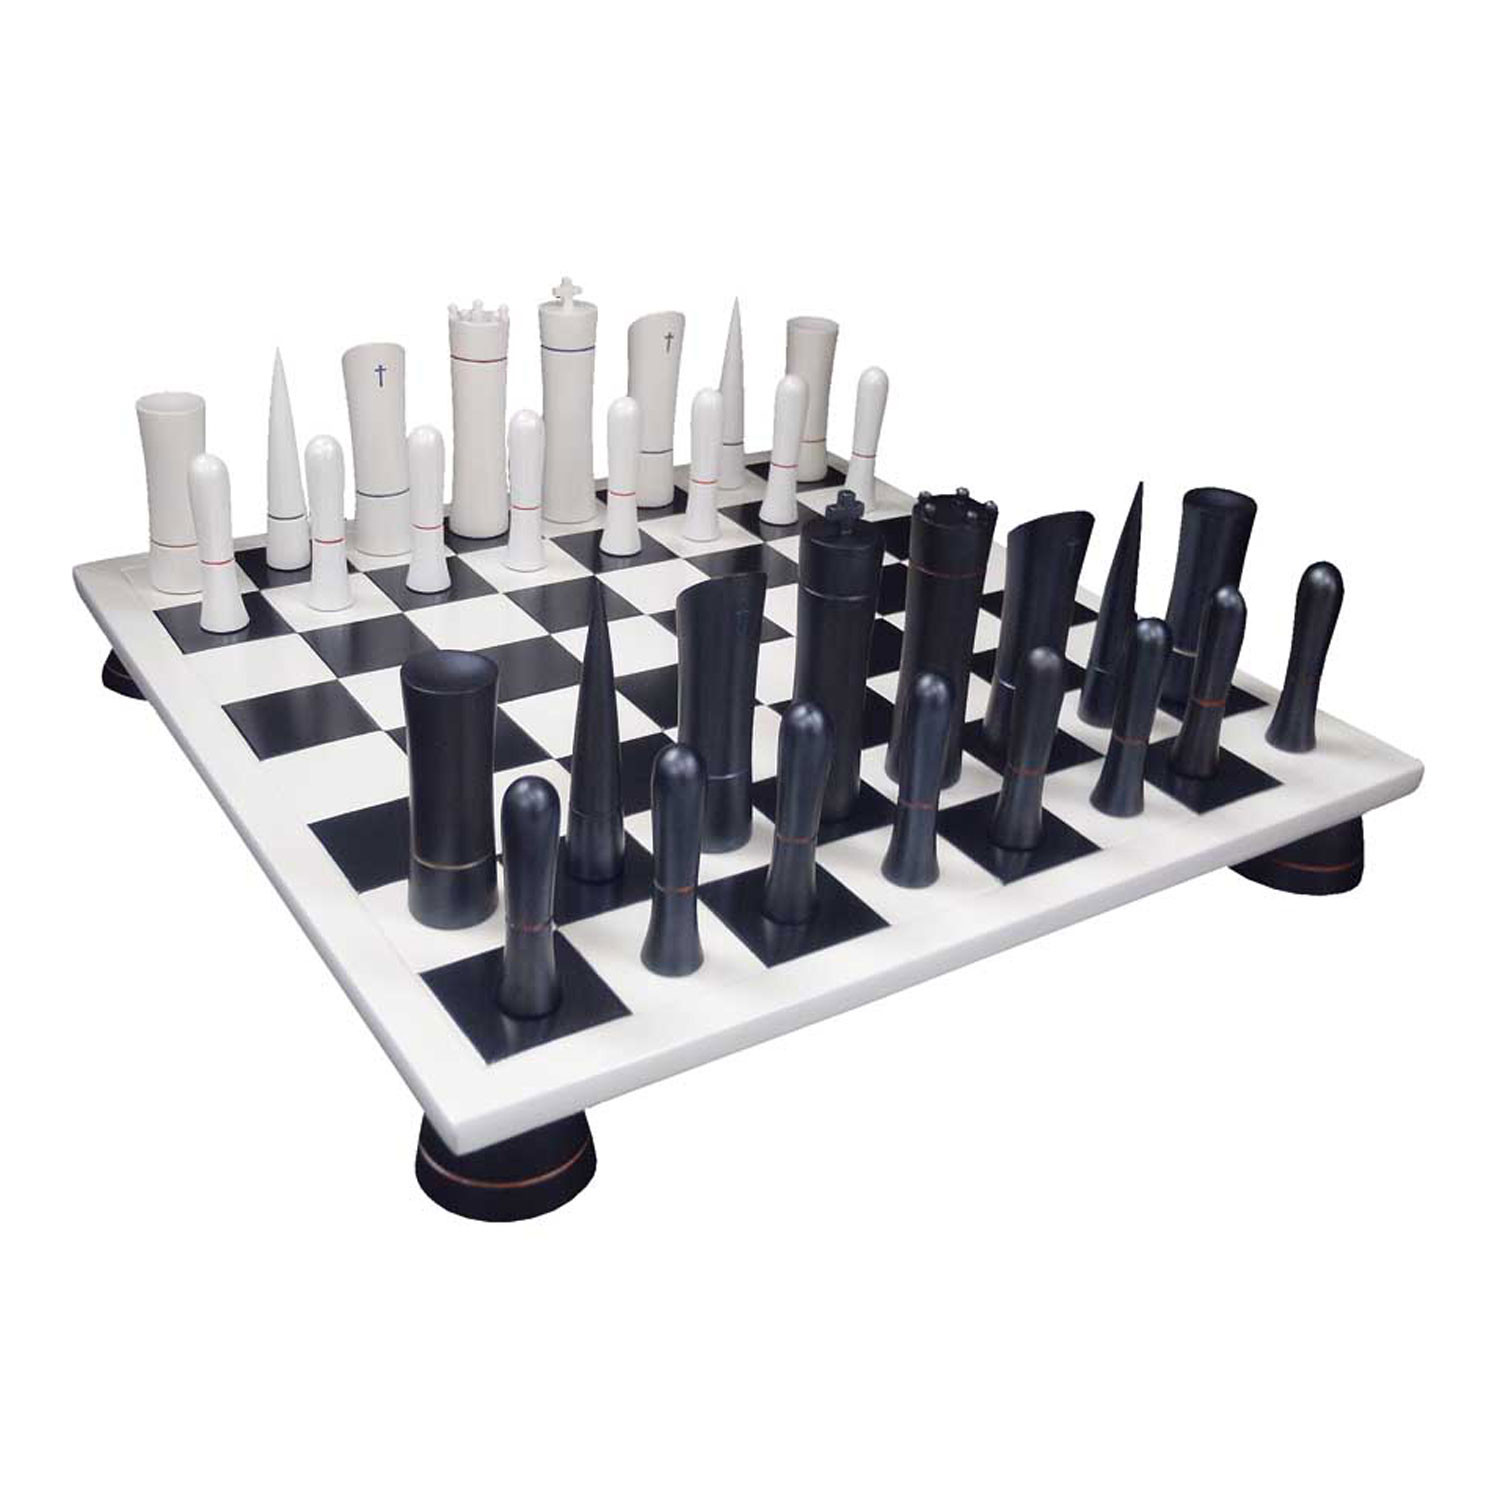 ... Chess Set White Black Board Italfama Chess Touch Of Modern ...